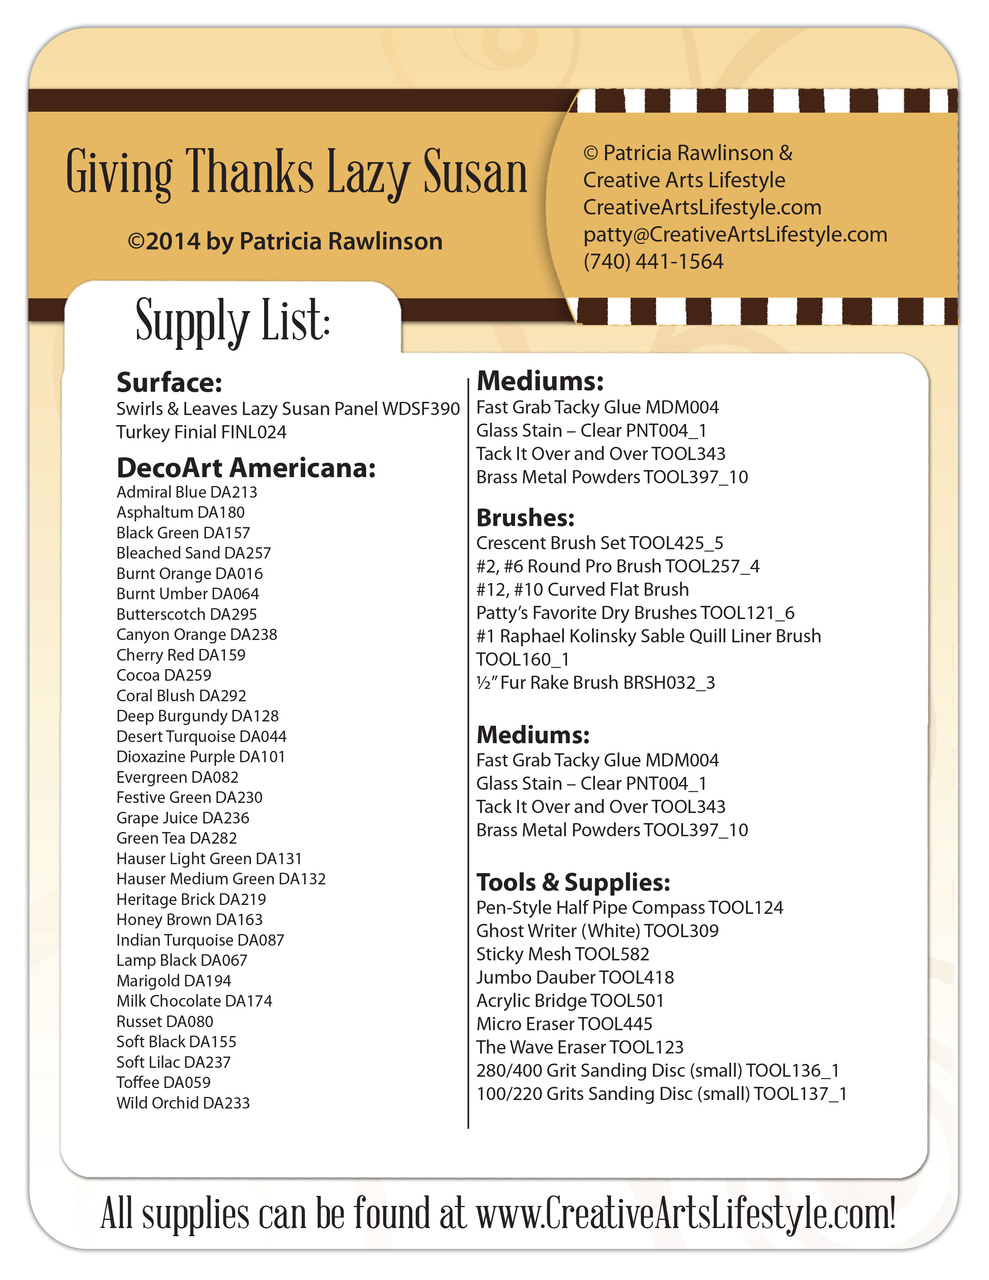 Giving Thanks Lazy Susan E-Packet - Patricia Rawlinson